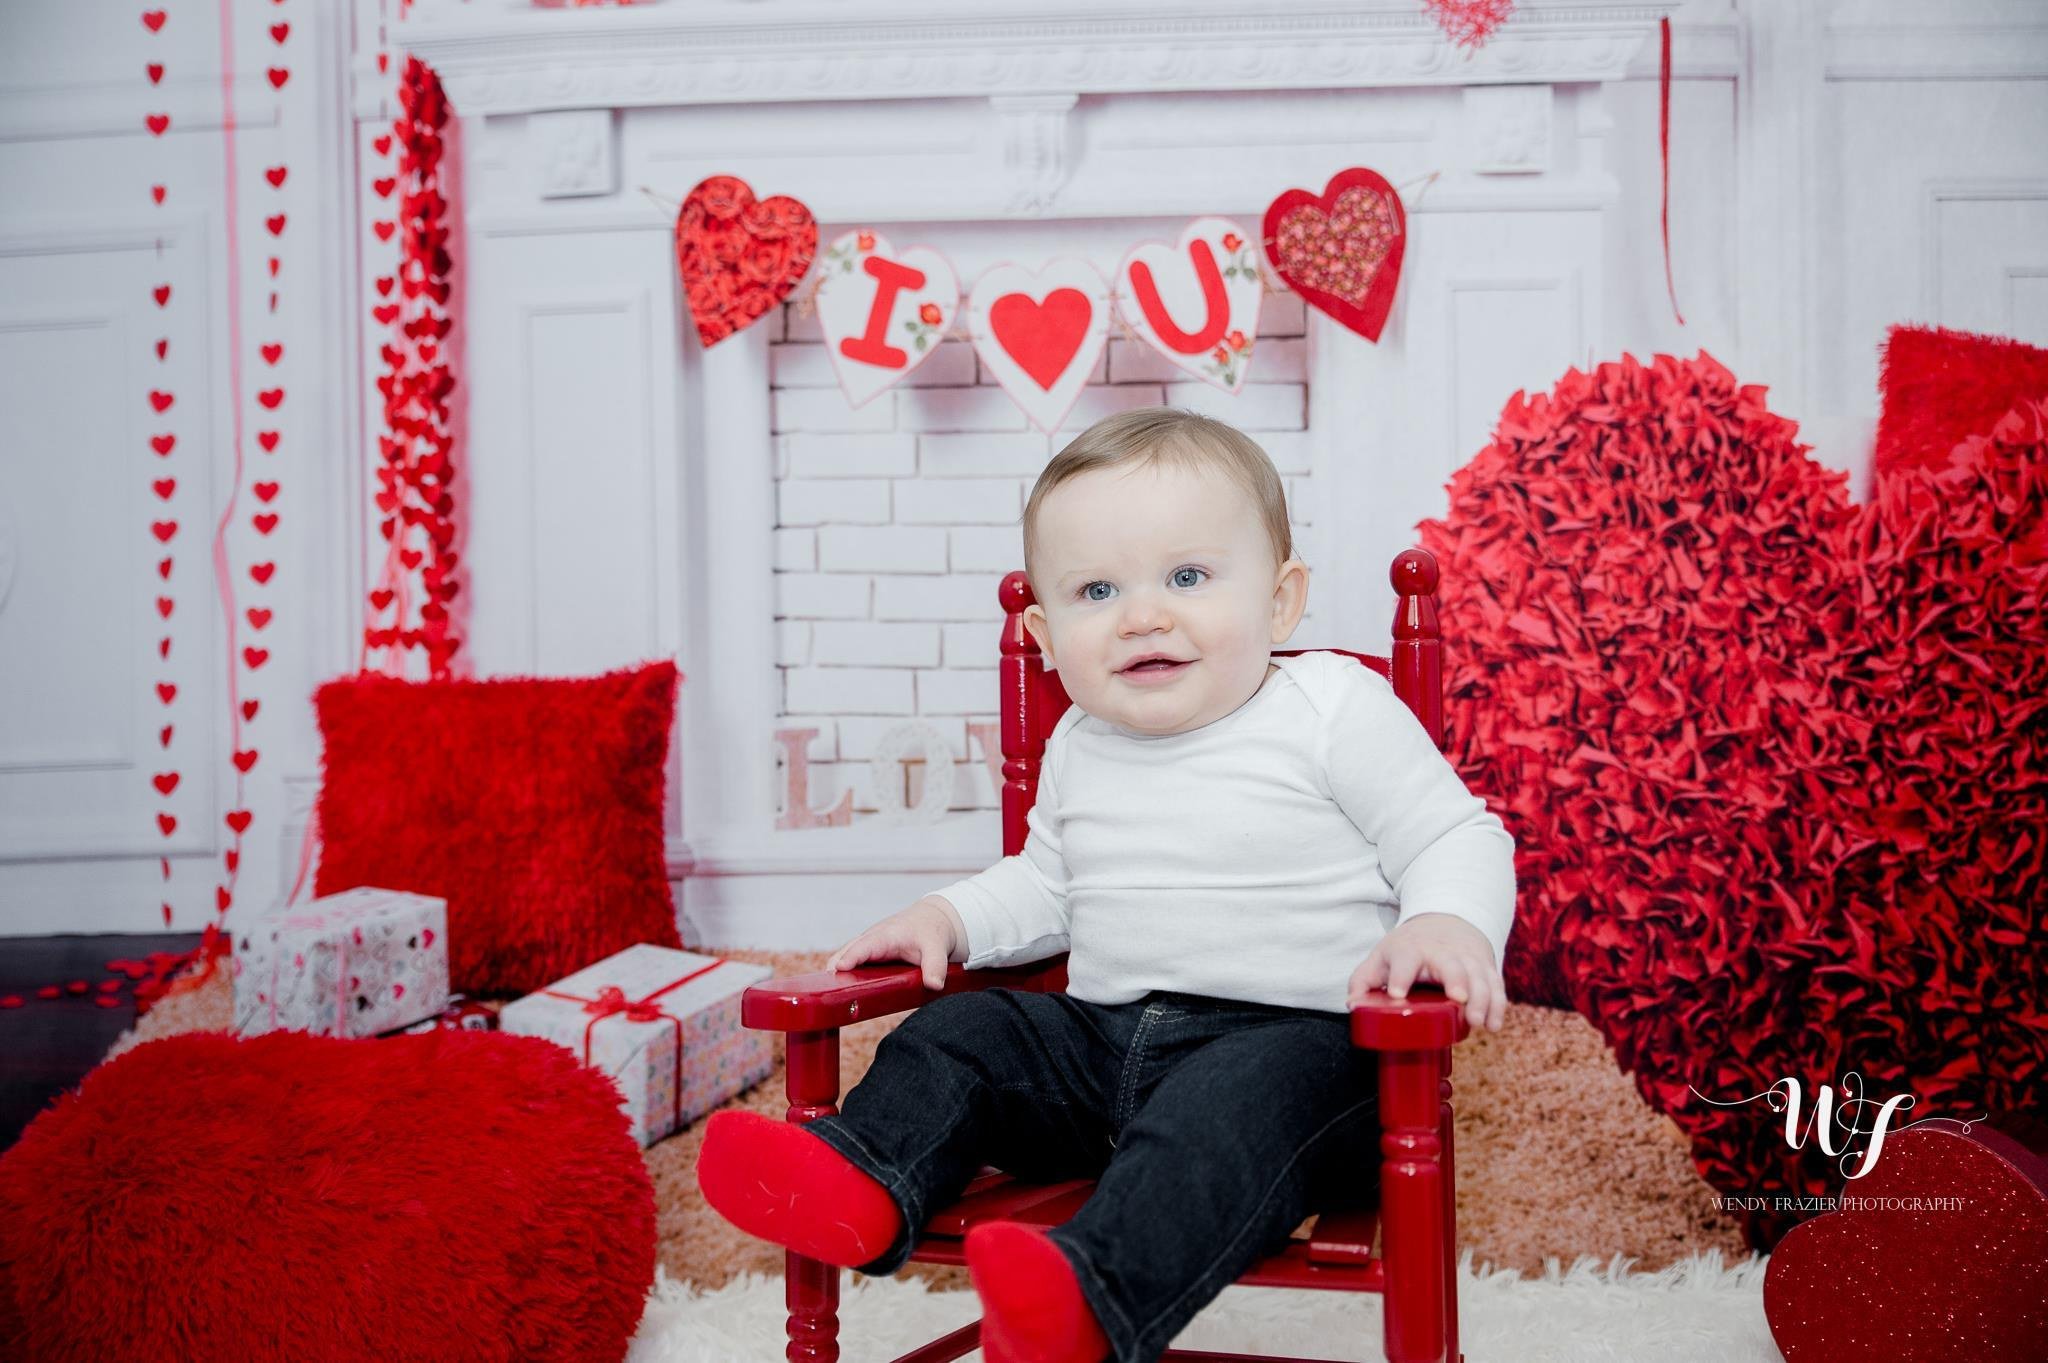 Load image into Gallery viewer, Katebackdrop:Kate Elegant Valentine's Day Backdrop for Photography